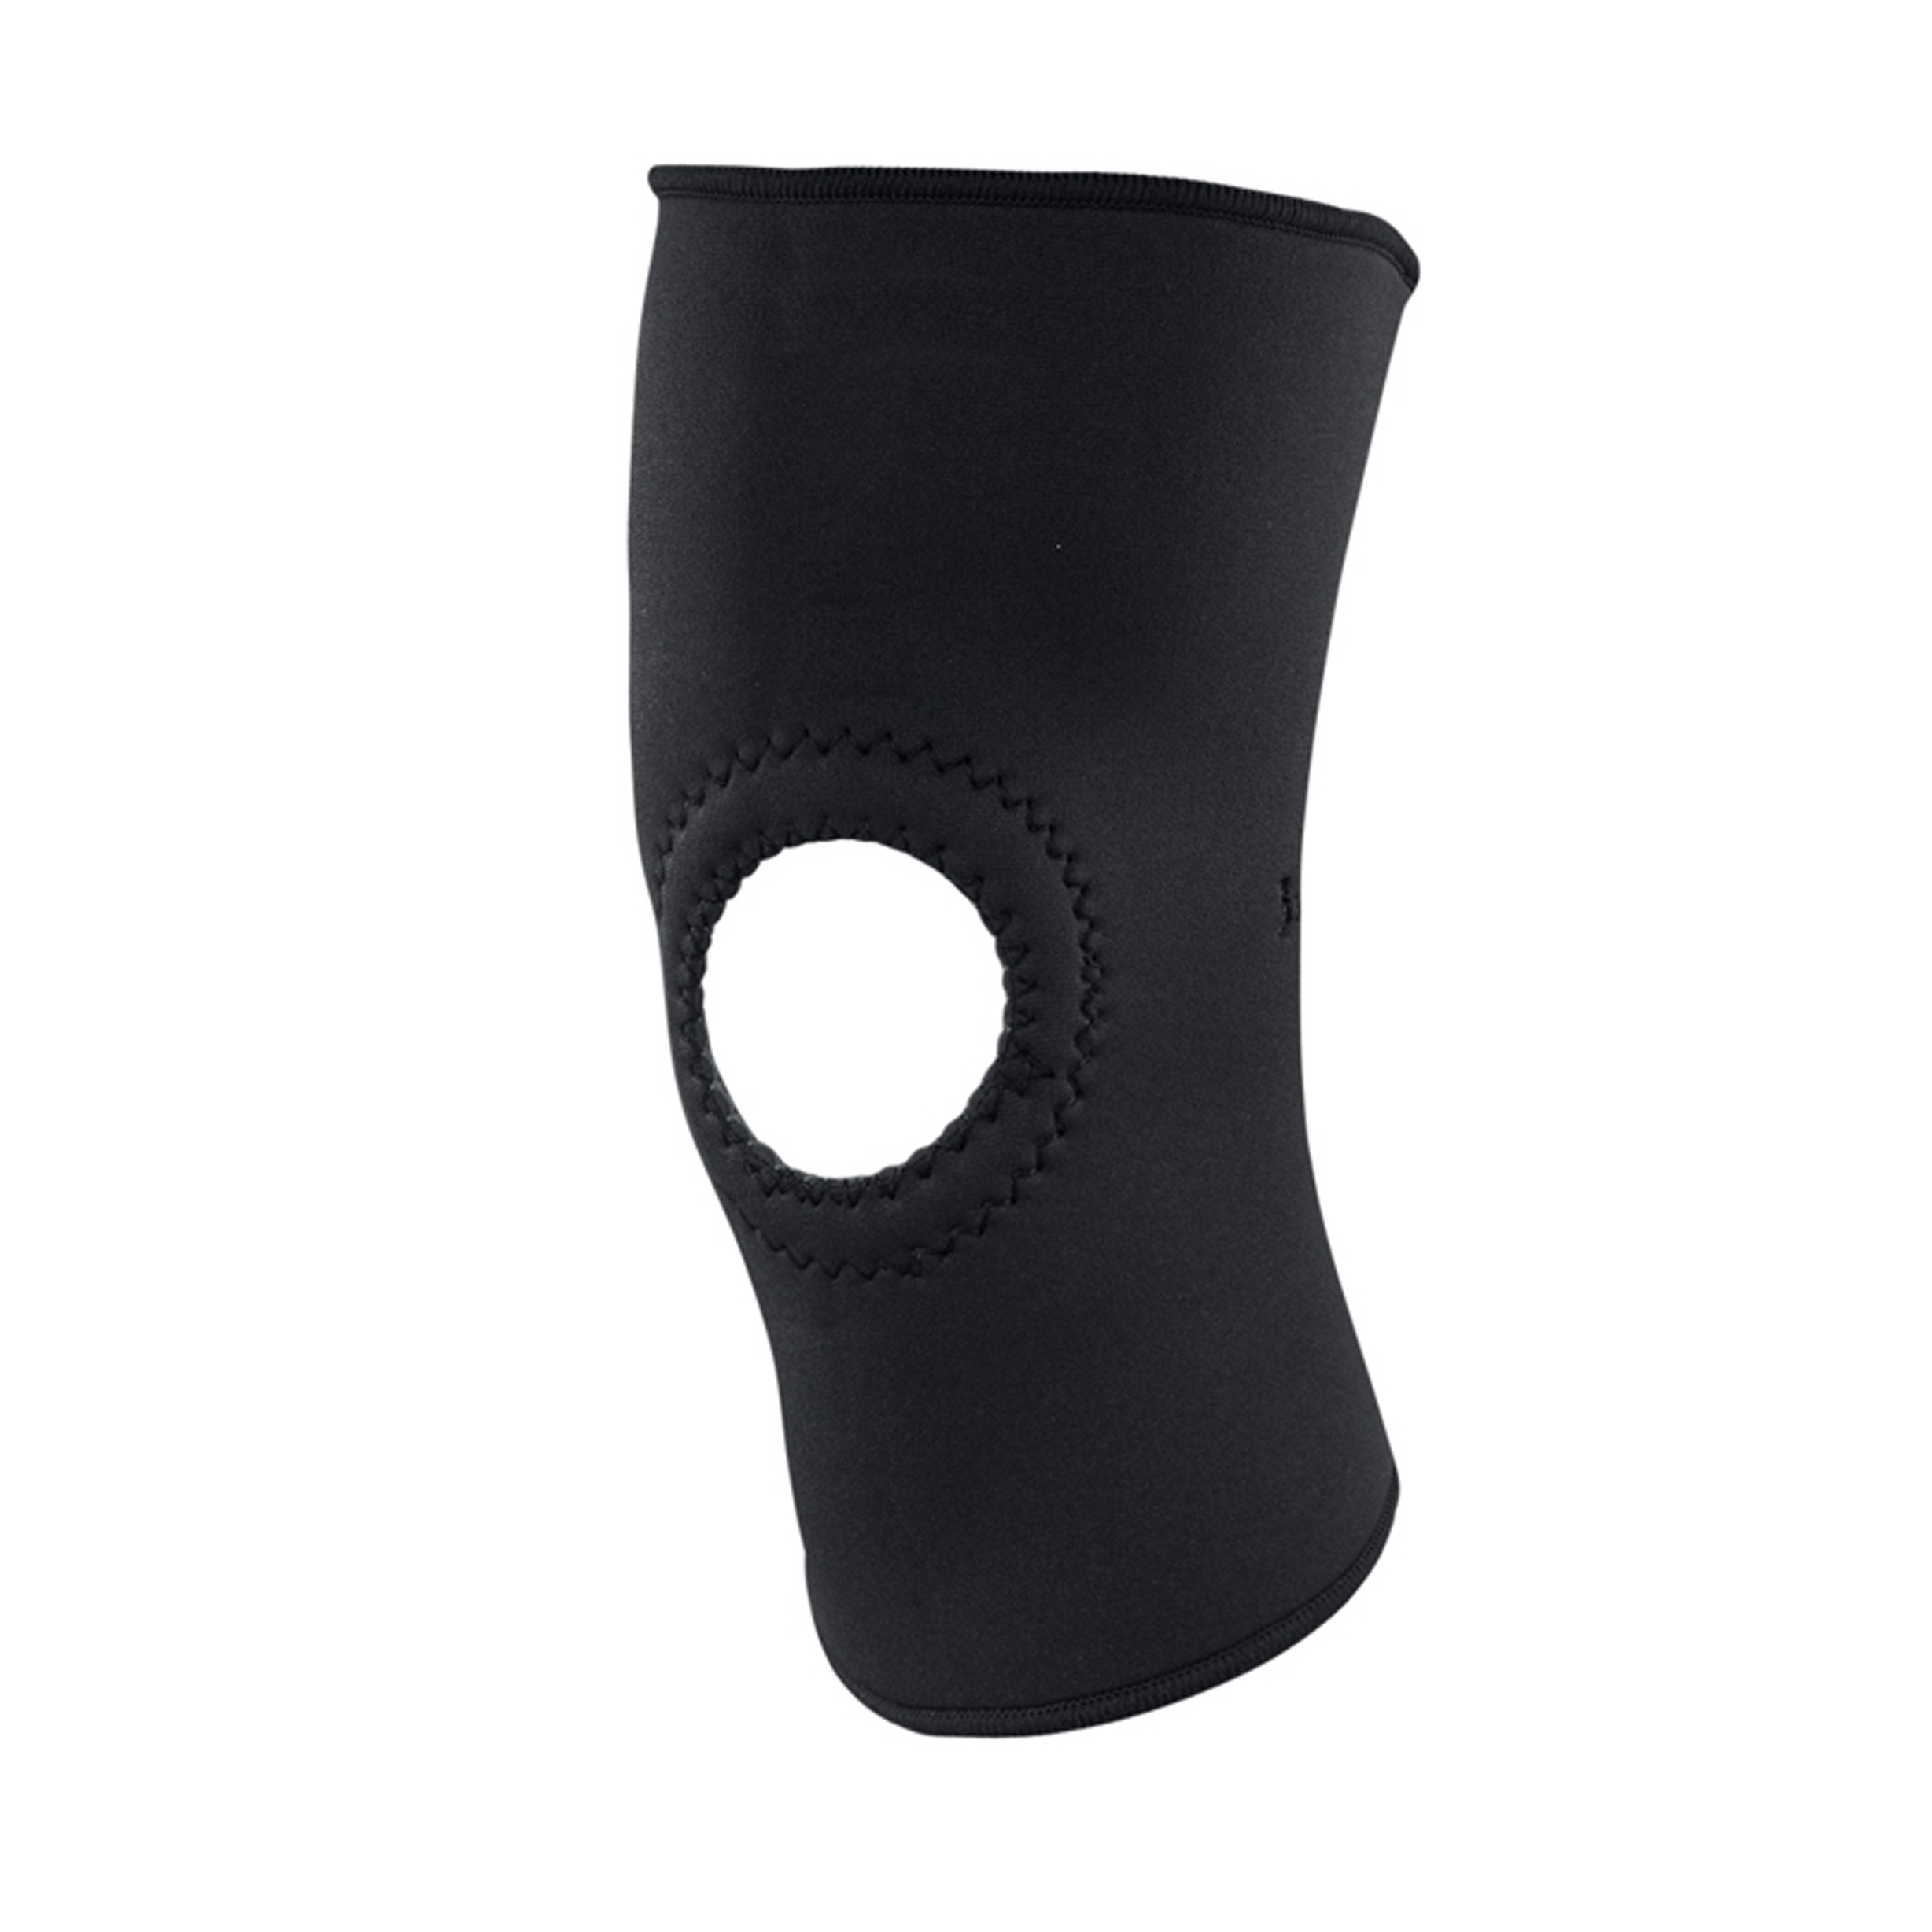 ACE Brand Open Knee Support, Medium, Black, 1/pack